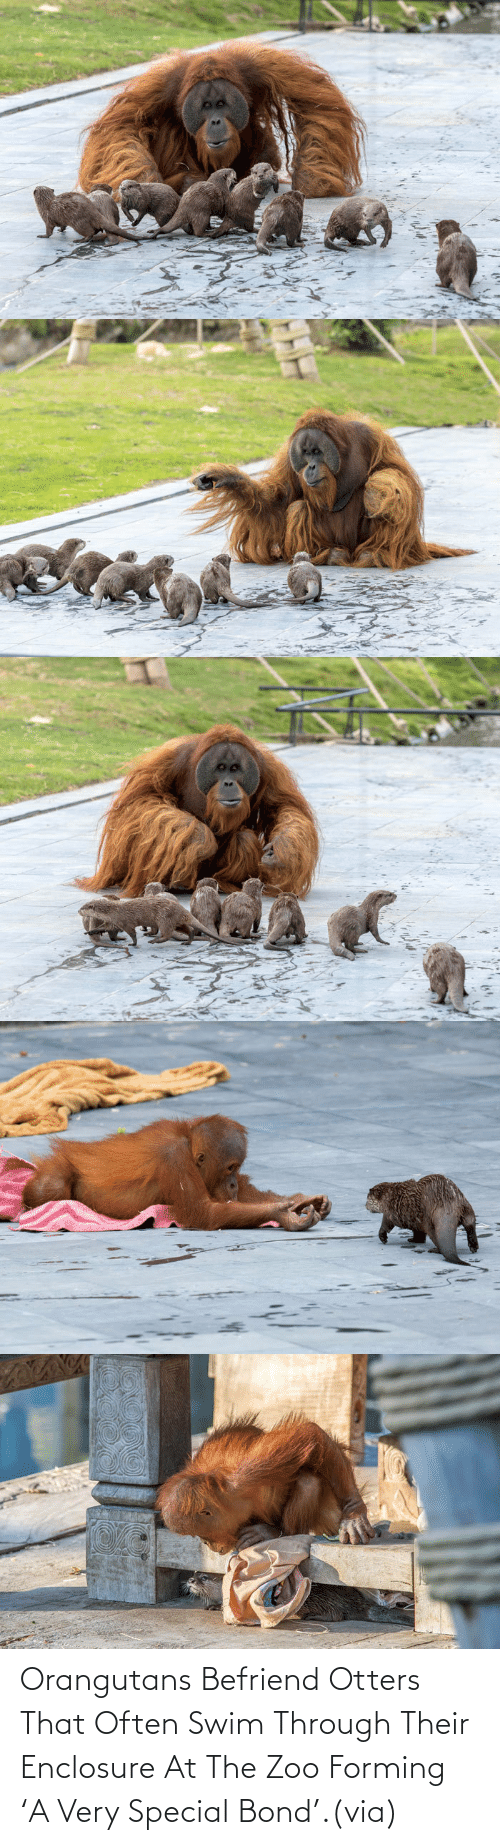 Otters: Orangutans Befriend Otters That Often Swim Through Their Enclosure At The Zoo Forming 'A Very Special Bond'.(via)